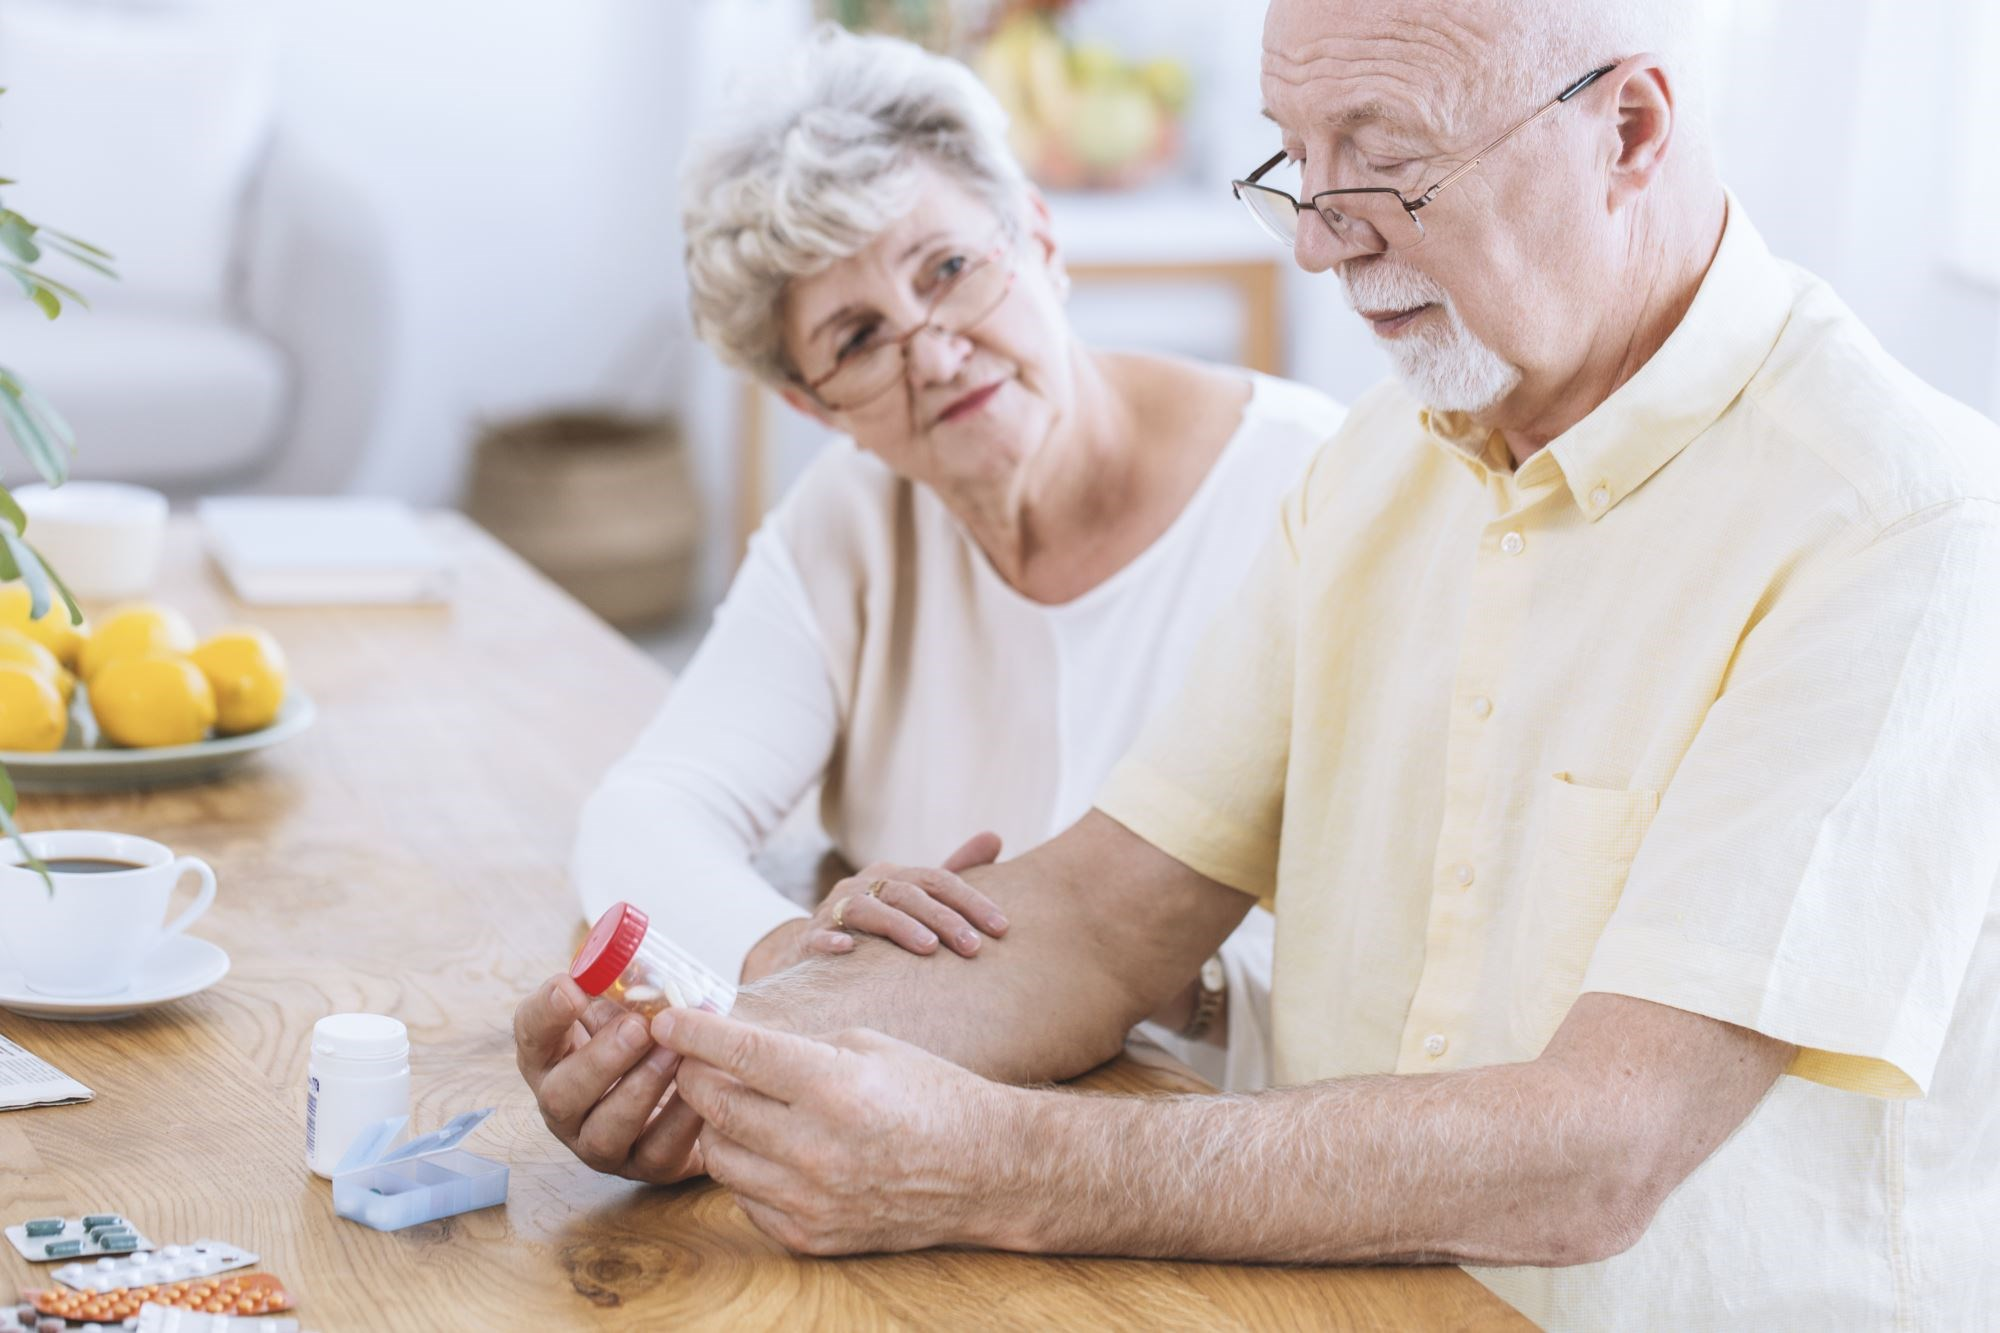 Liraglutide May Prevent Dementia in Elderly With Type 2 Diabetes